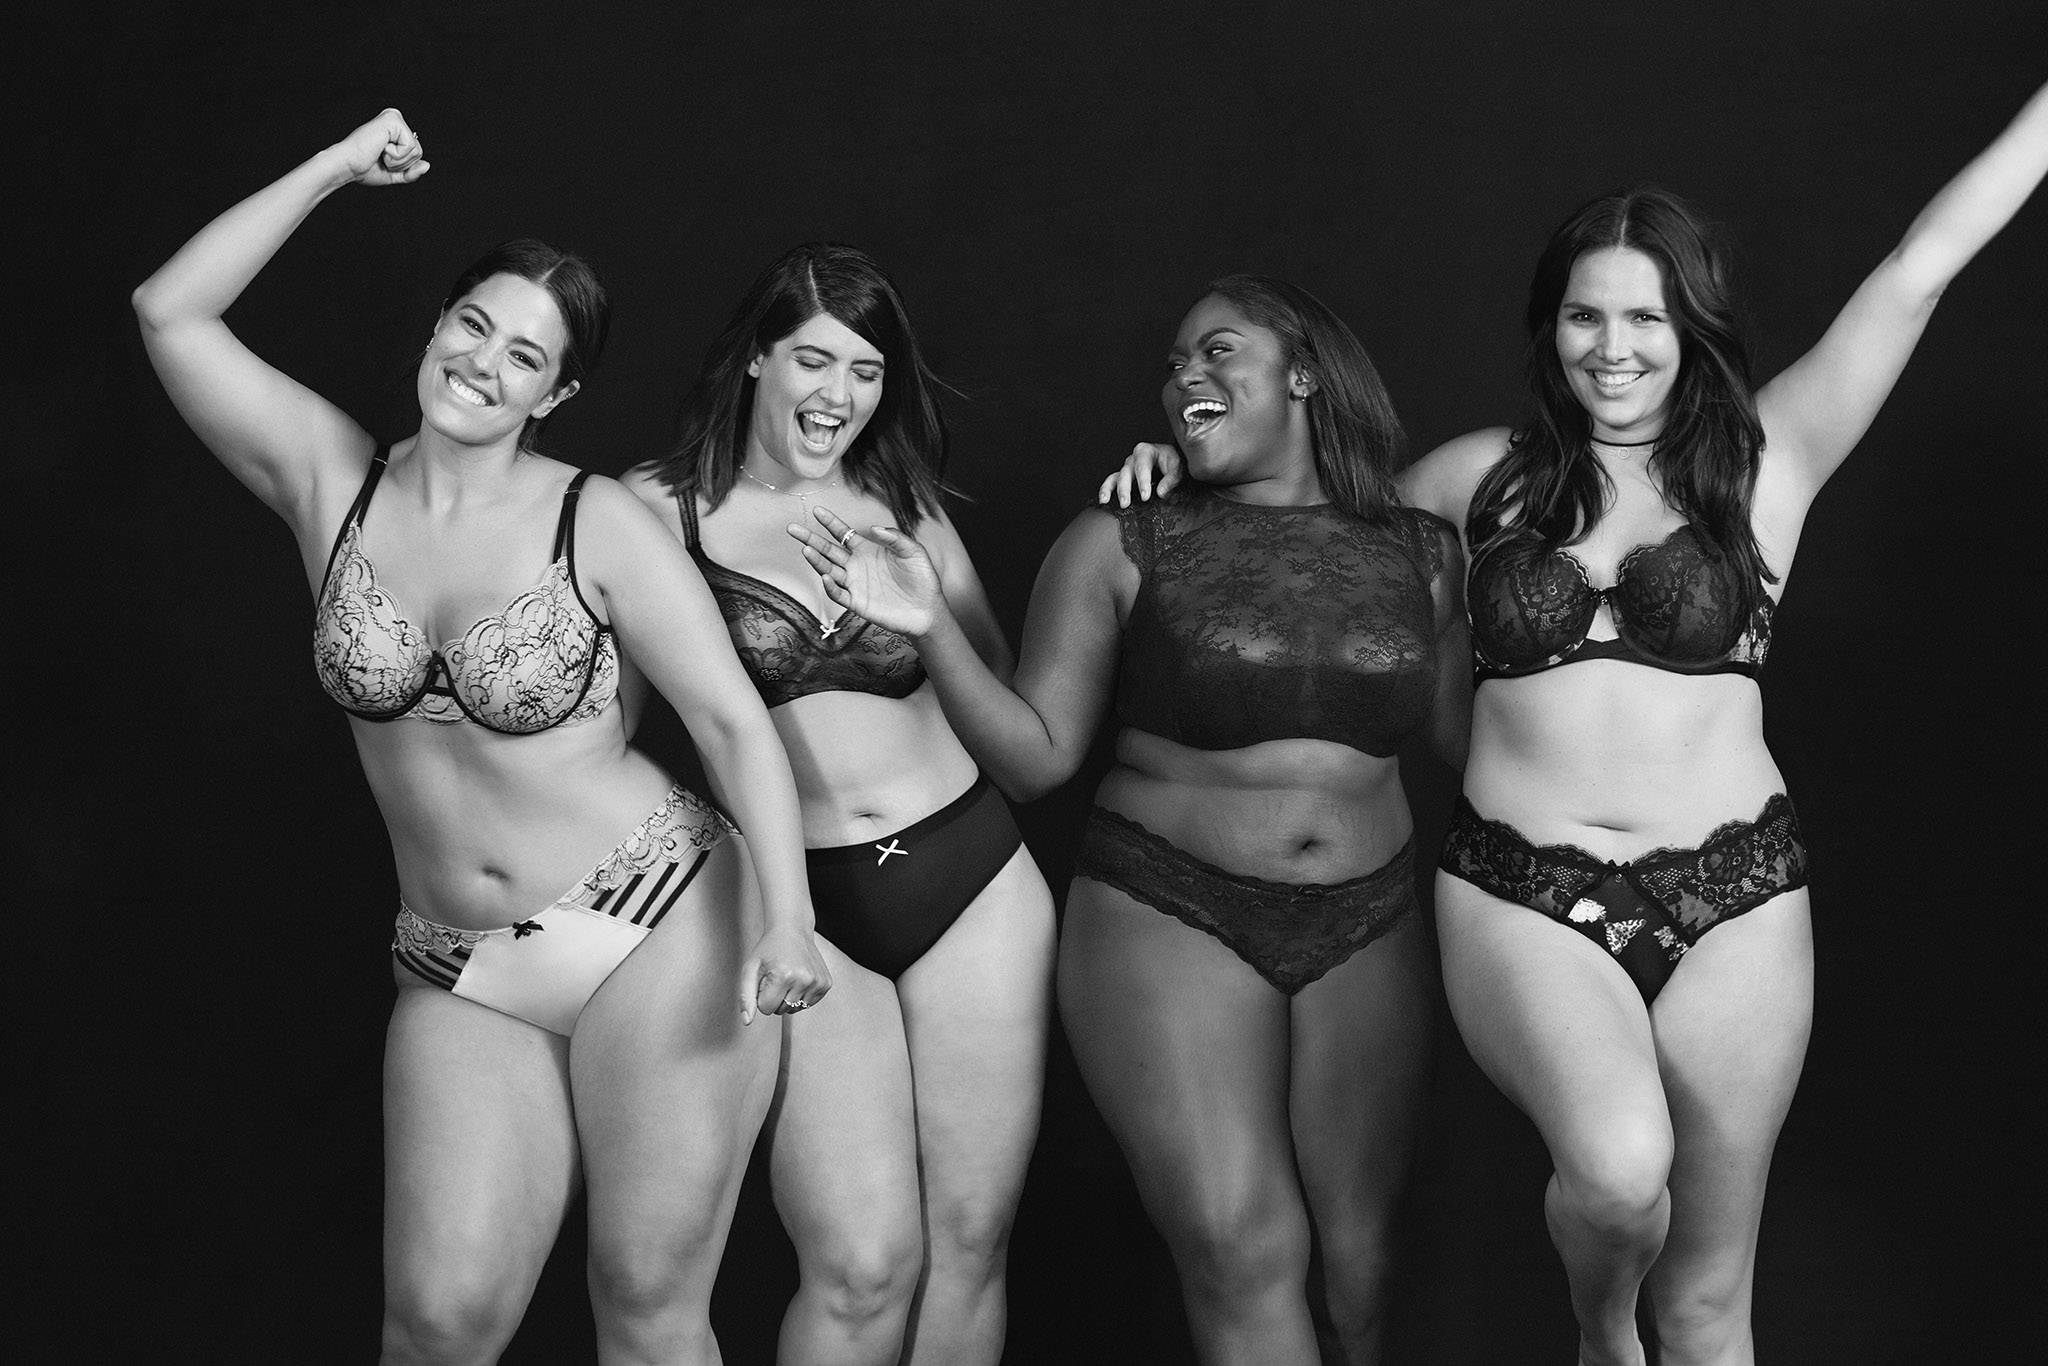 The demand for plus-size swimwear continues to grow.